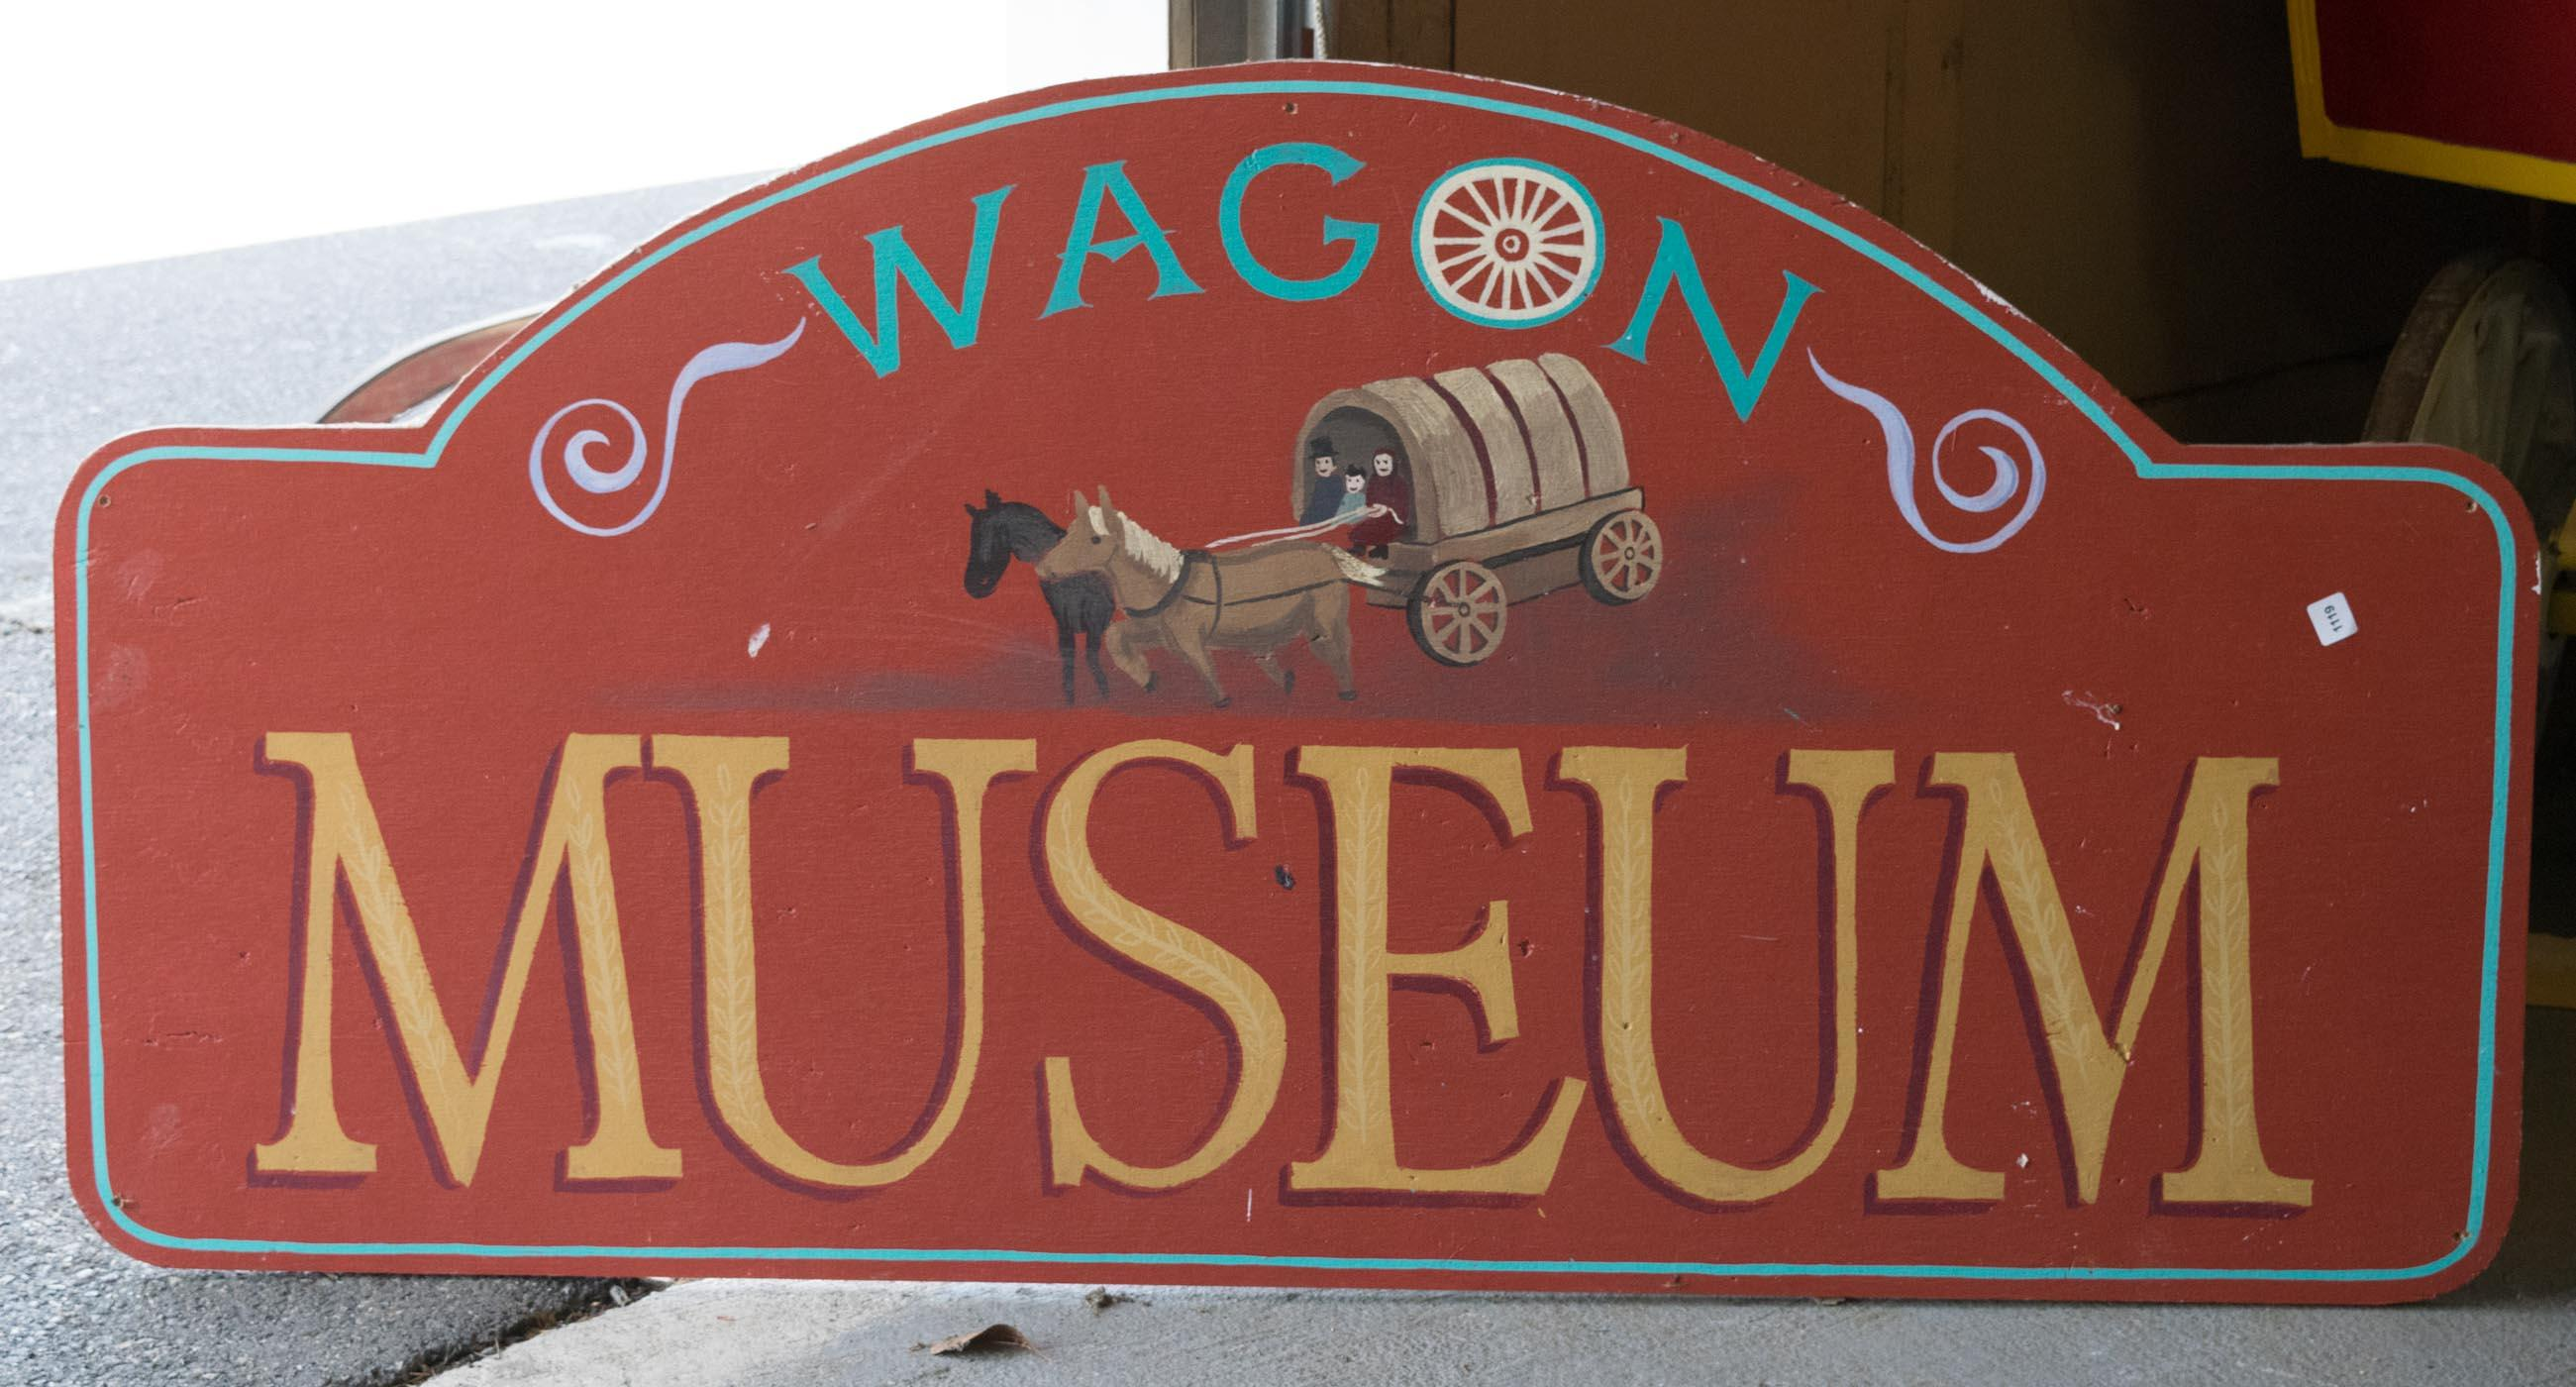 WAGON MUSEUM' SIGN